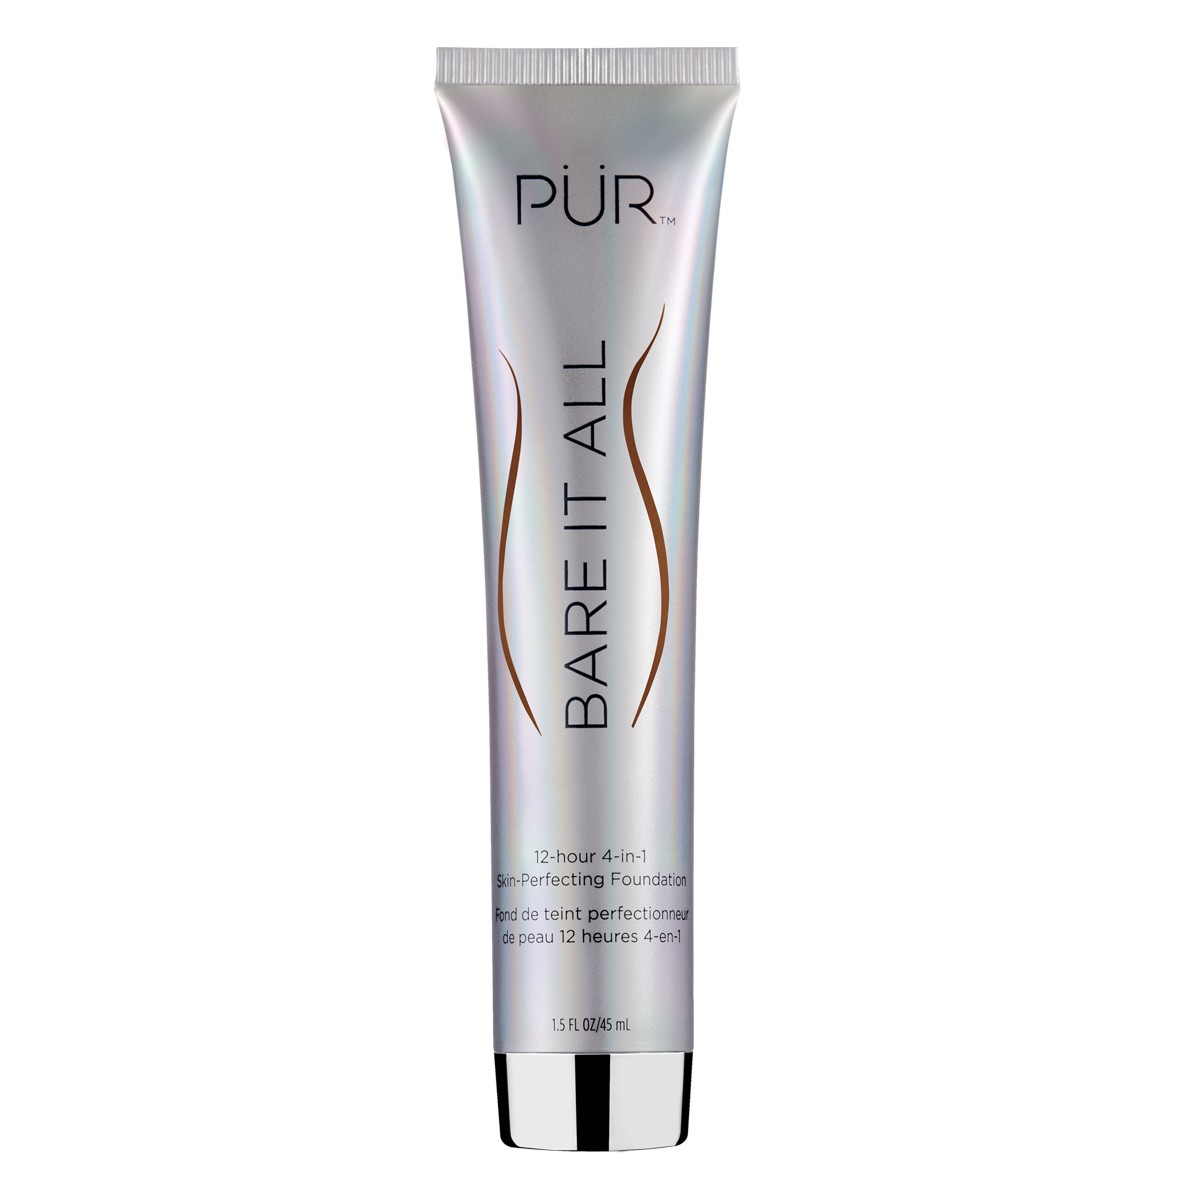 PÜR Bare It All™ 4-in-1 Skin-Perfecting Foundation